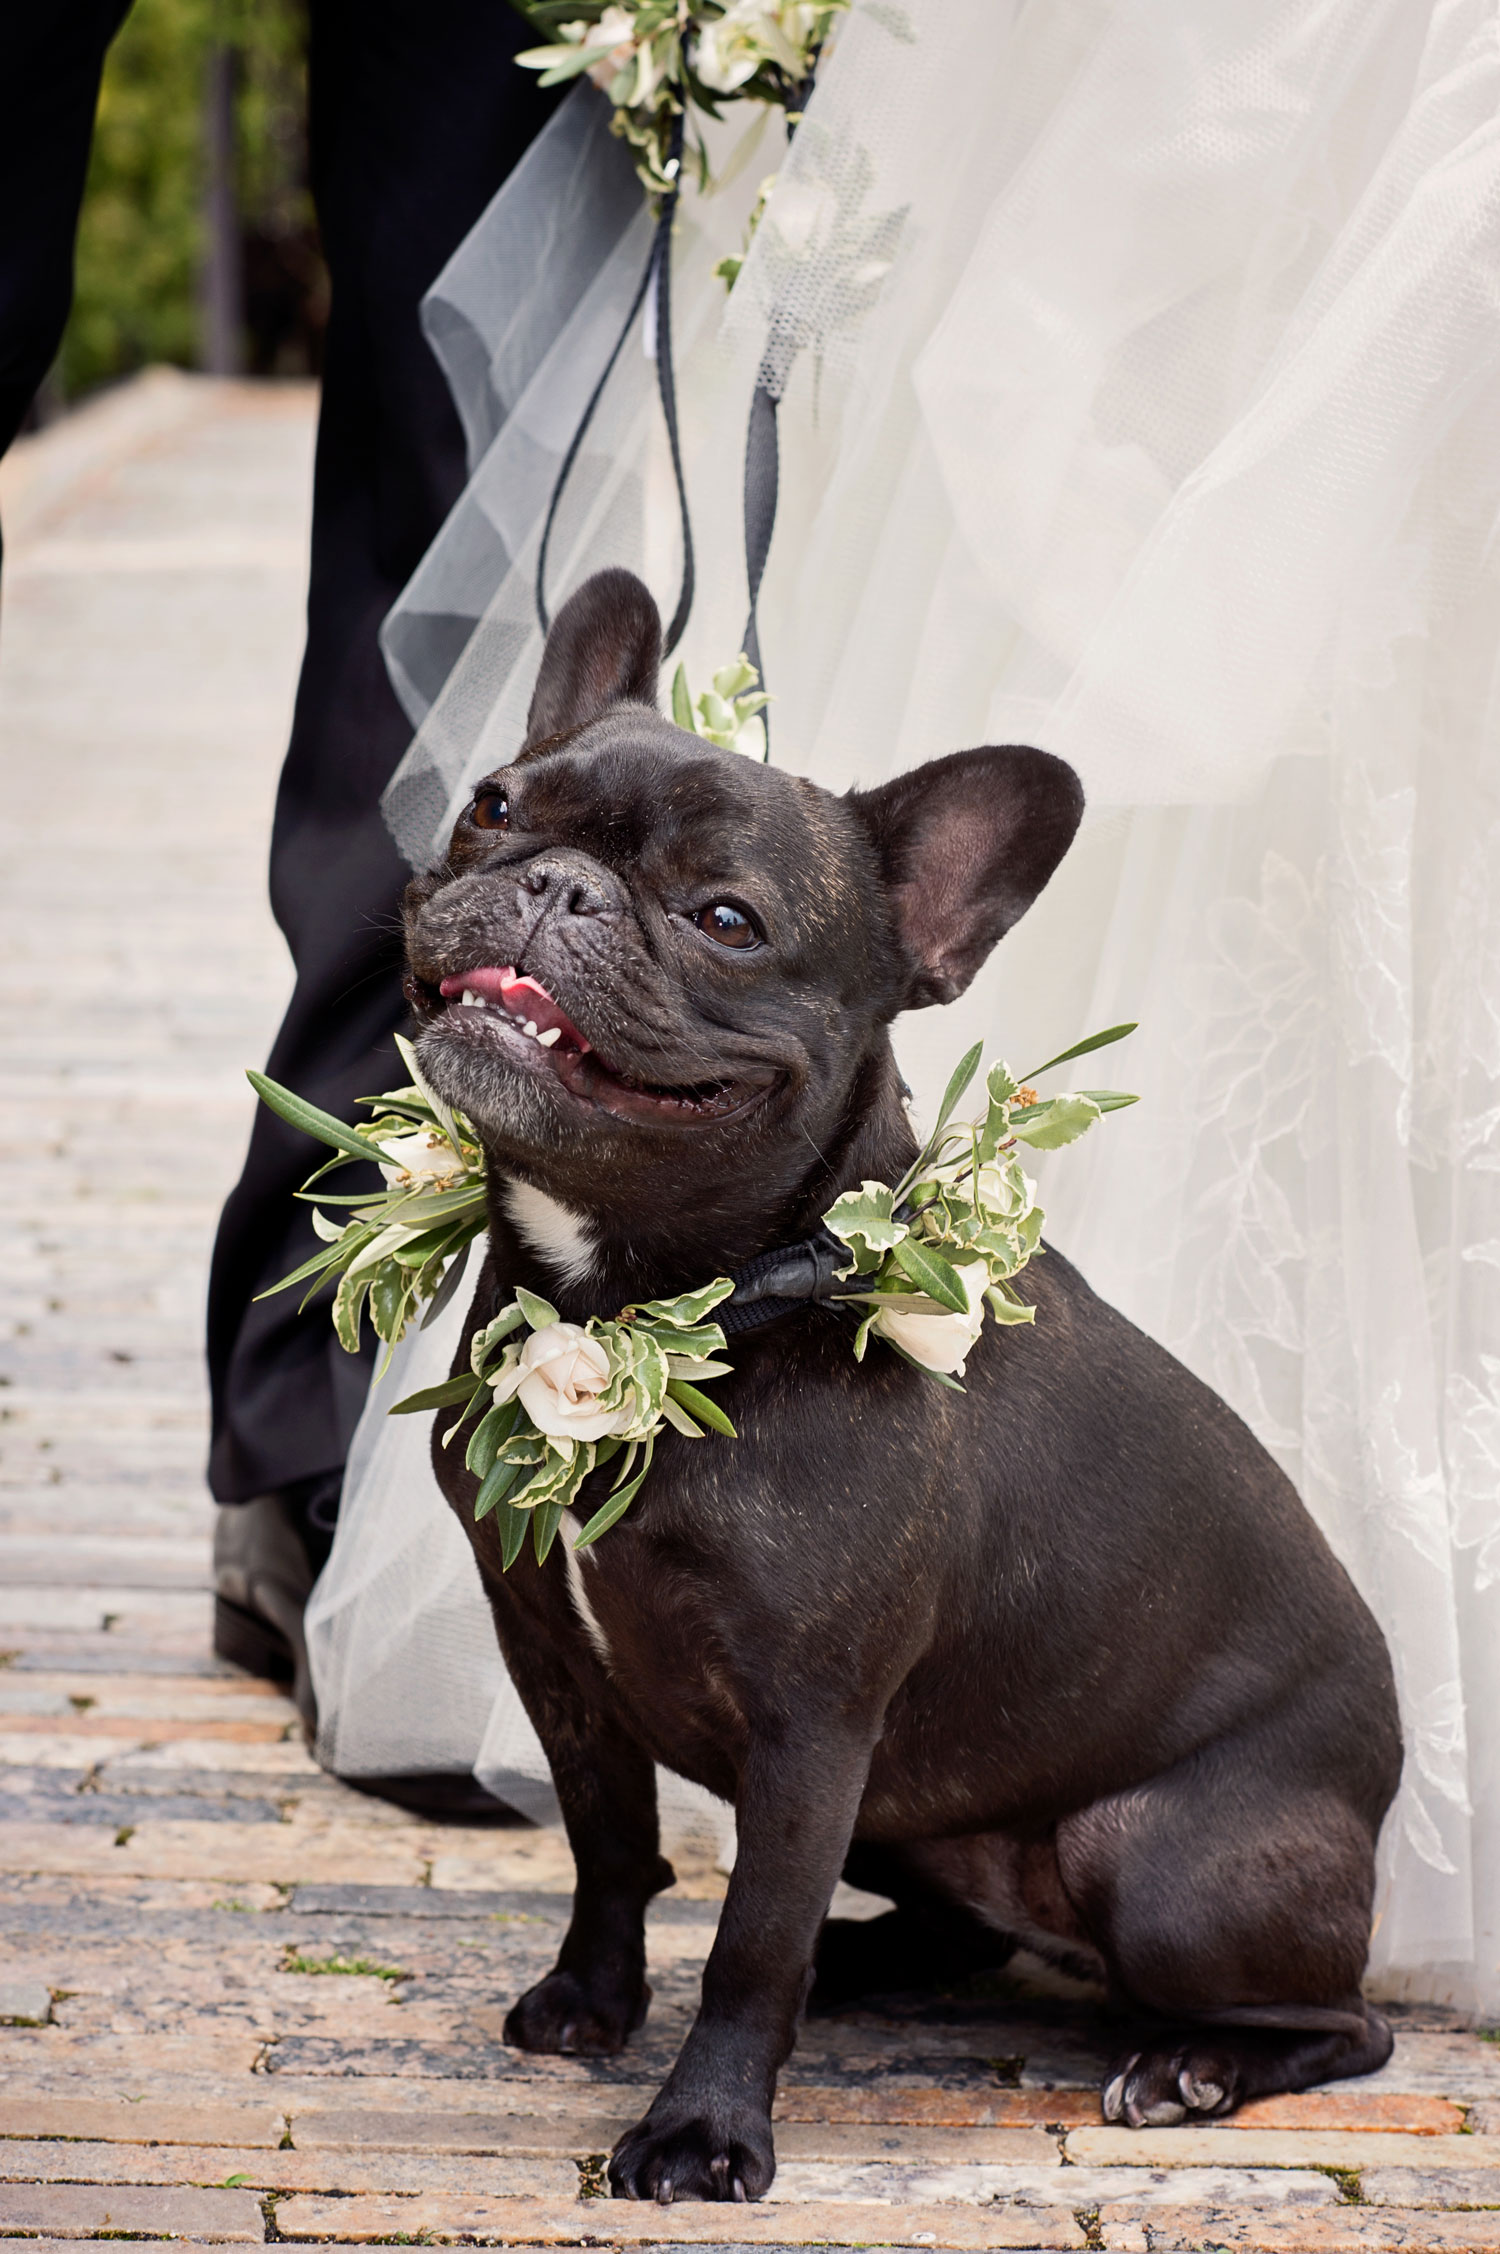 Black frenchie french bull dog at wedding ceremony with greenery collar wedding